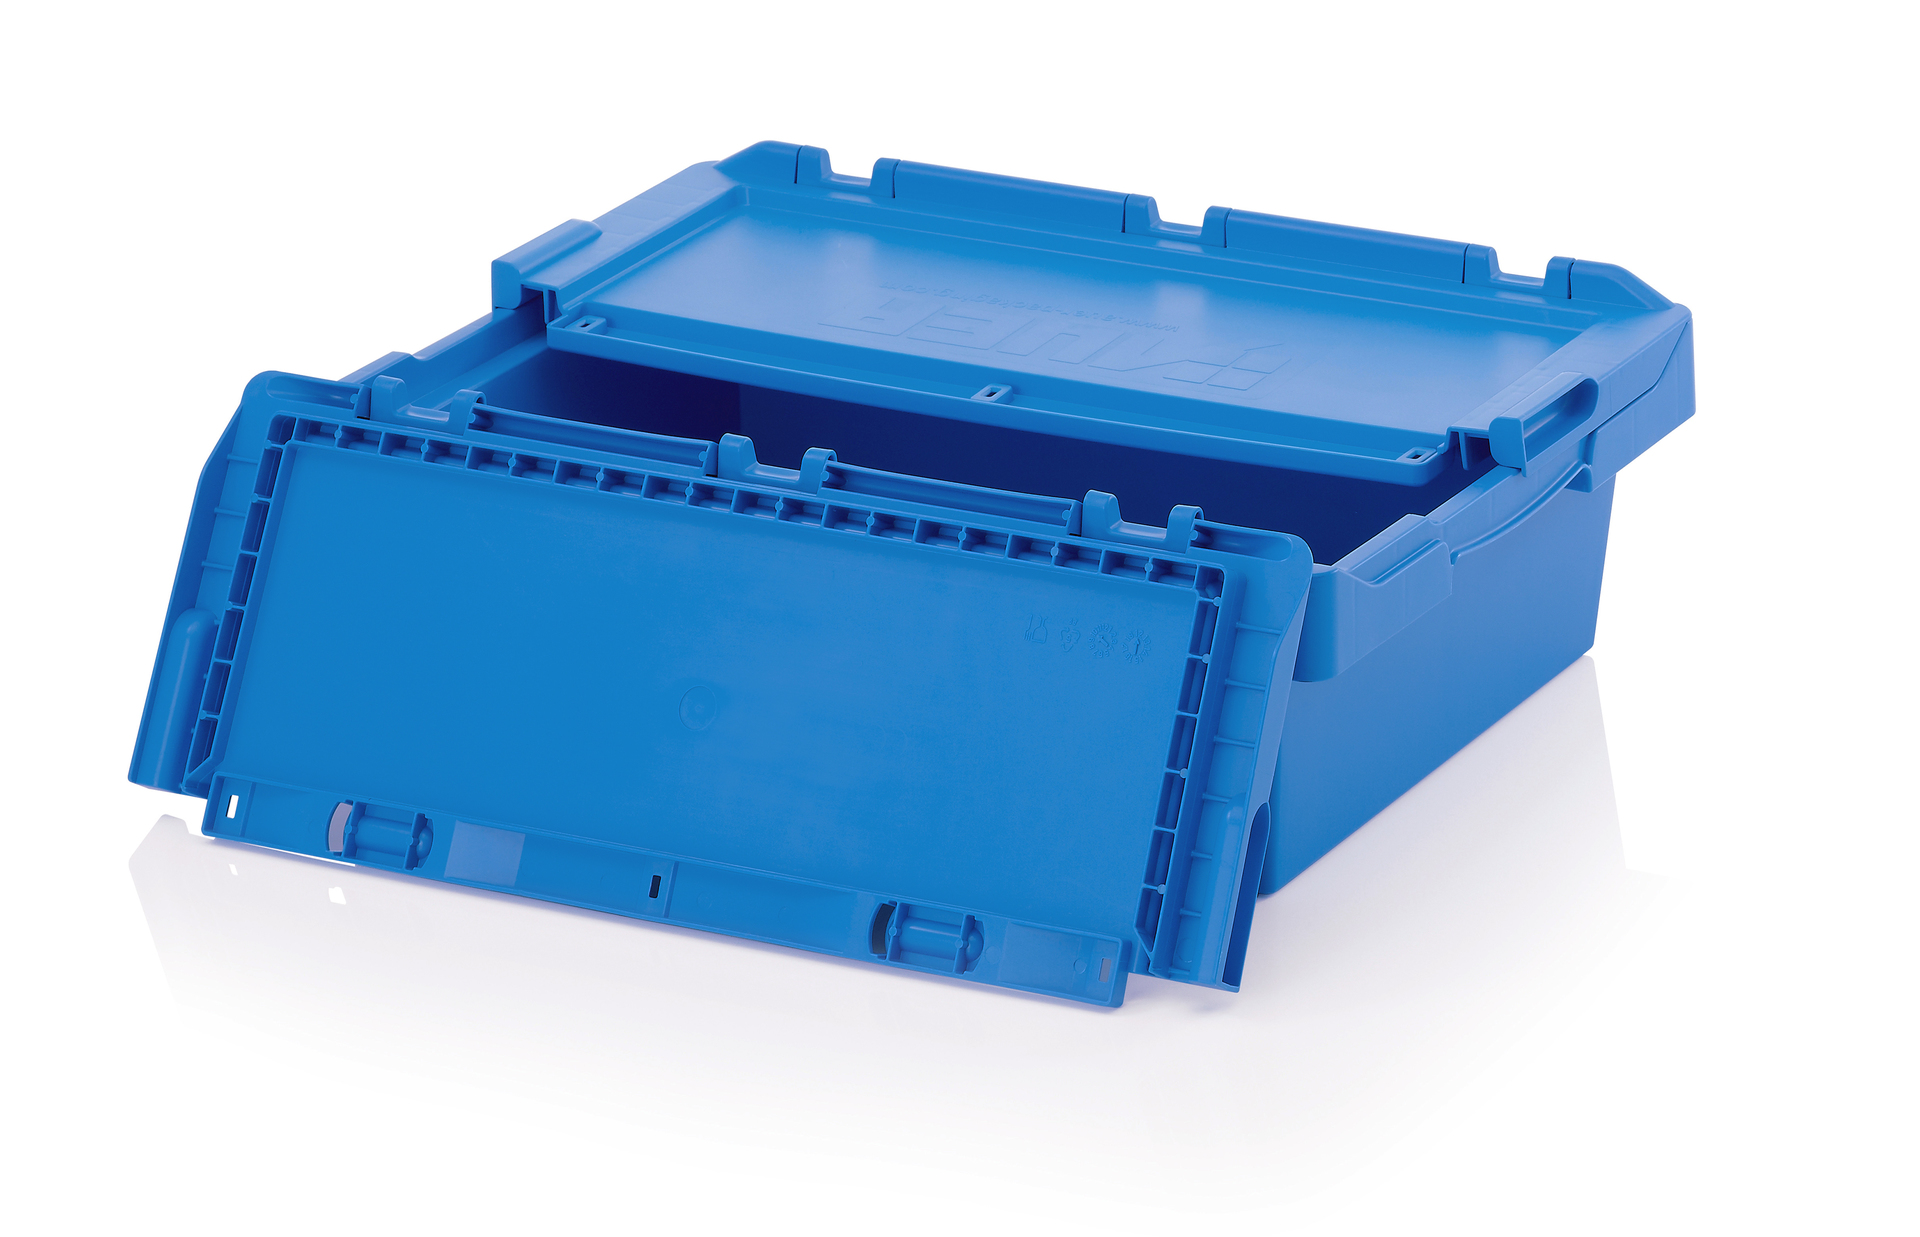 RC6170L_2 Reusable Containers - Plastic Mouldings Northern